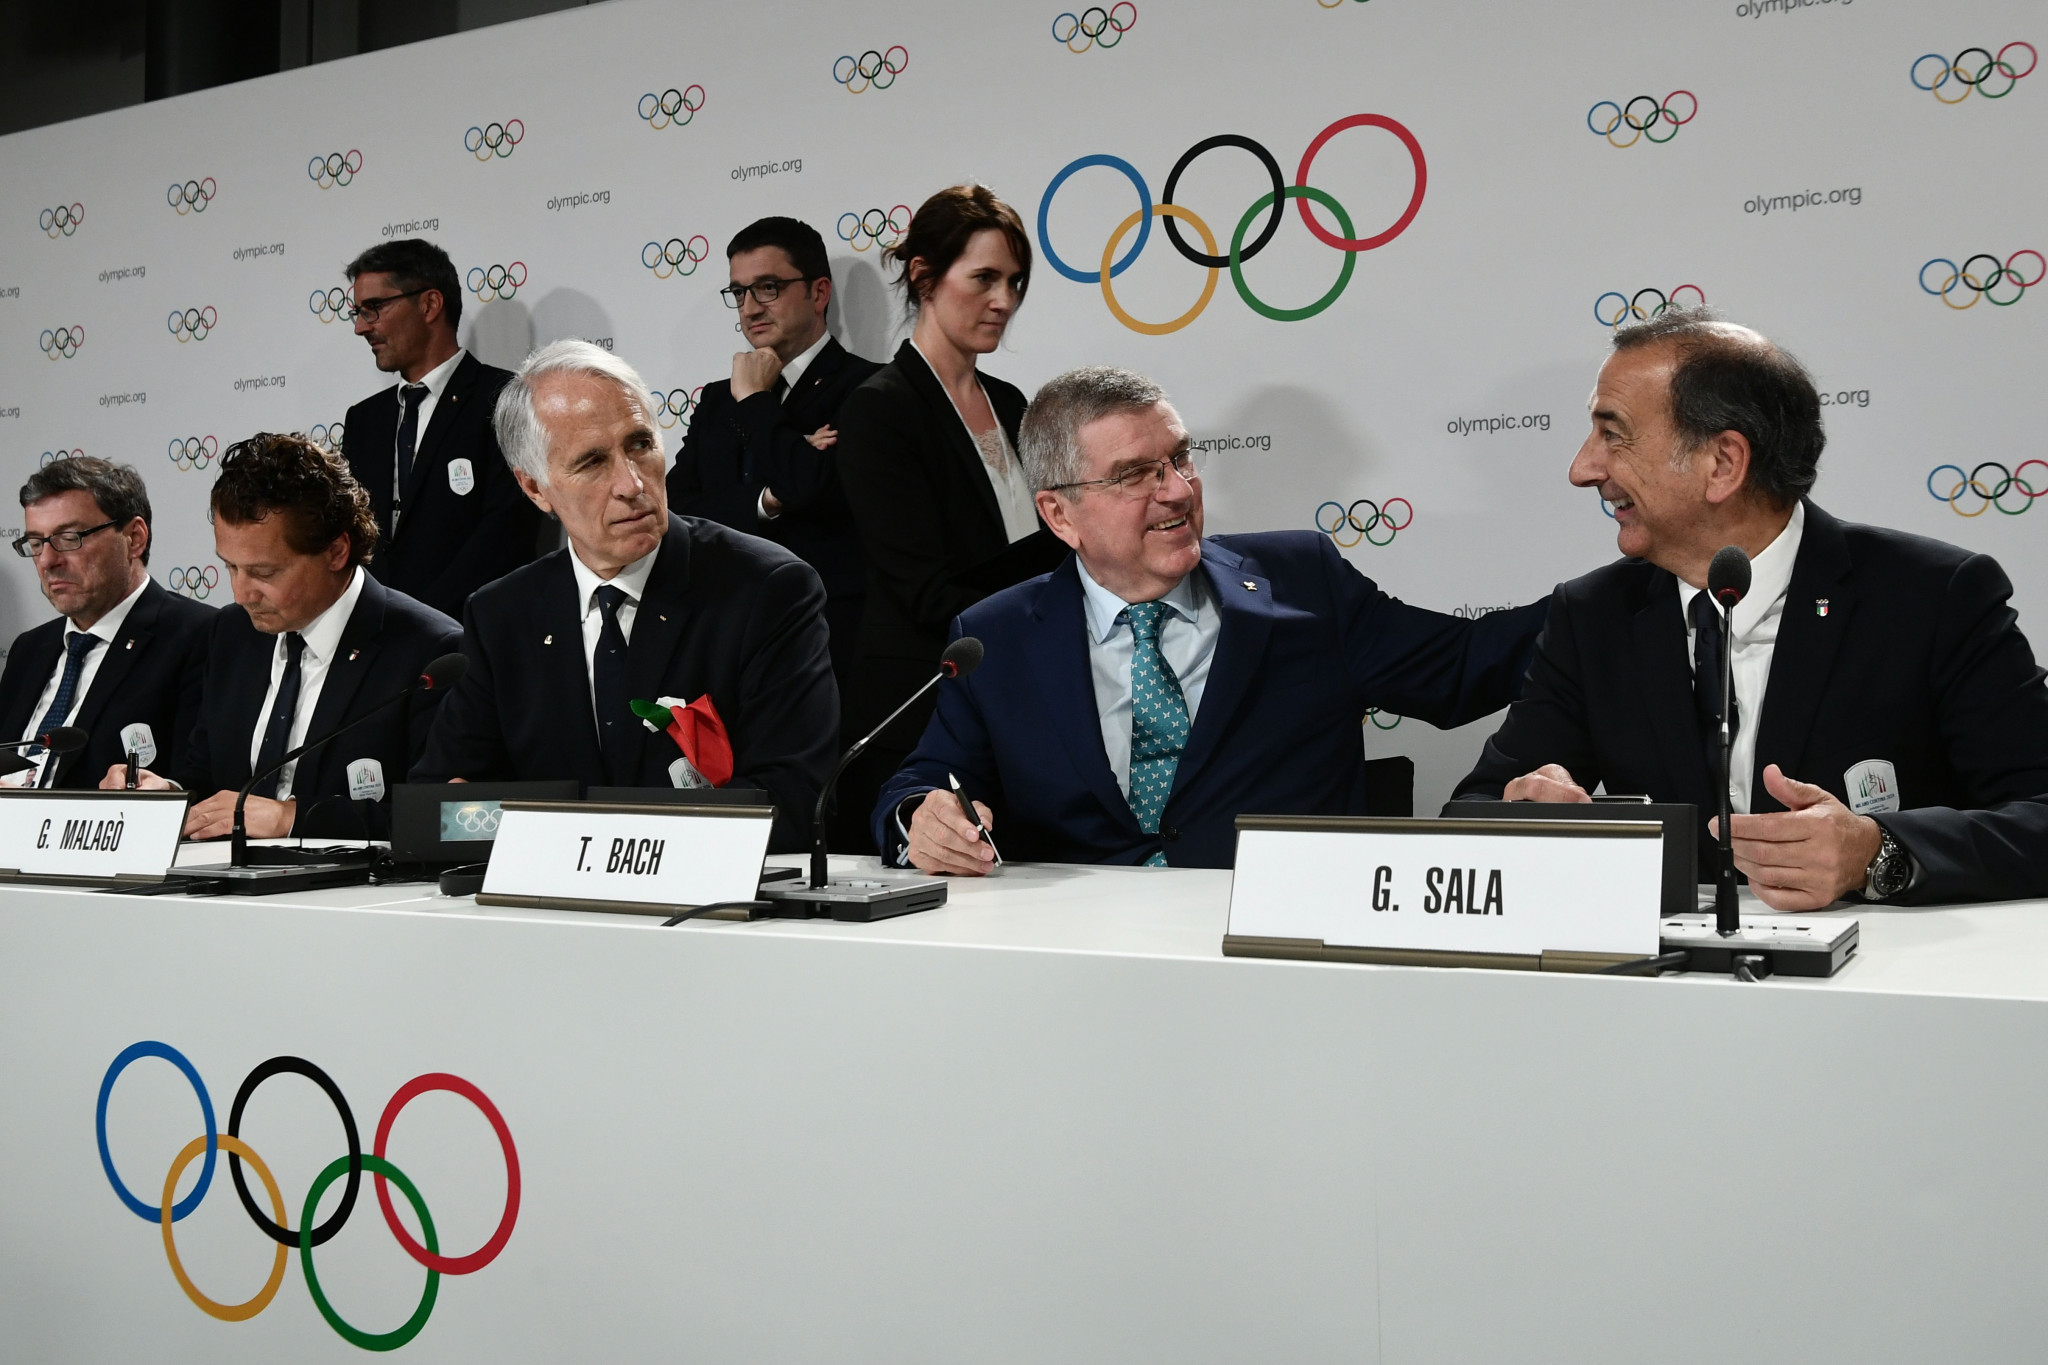 IOC President Thomas Bach, second from right, at last week's IOC Session